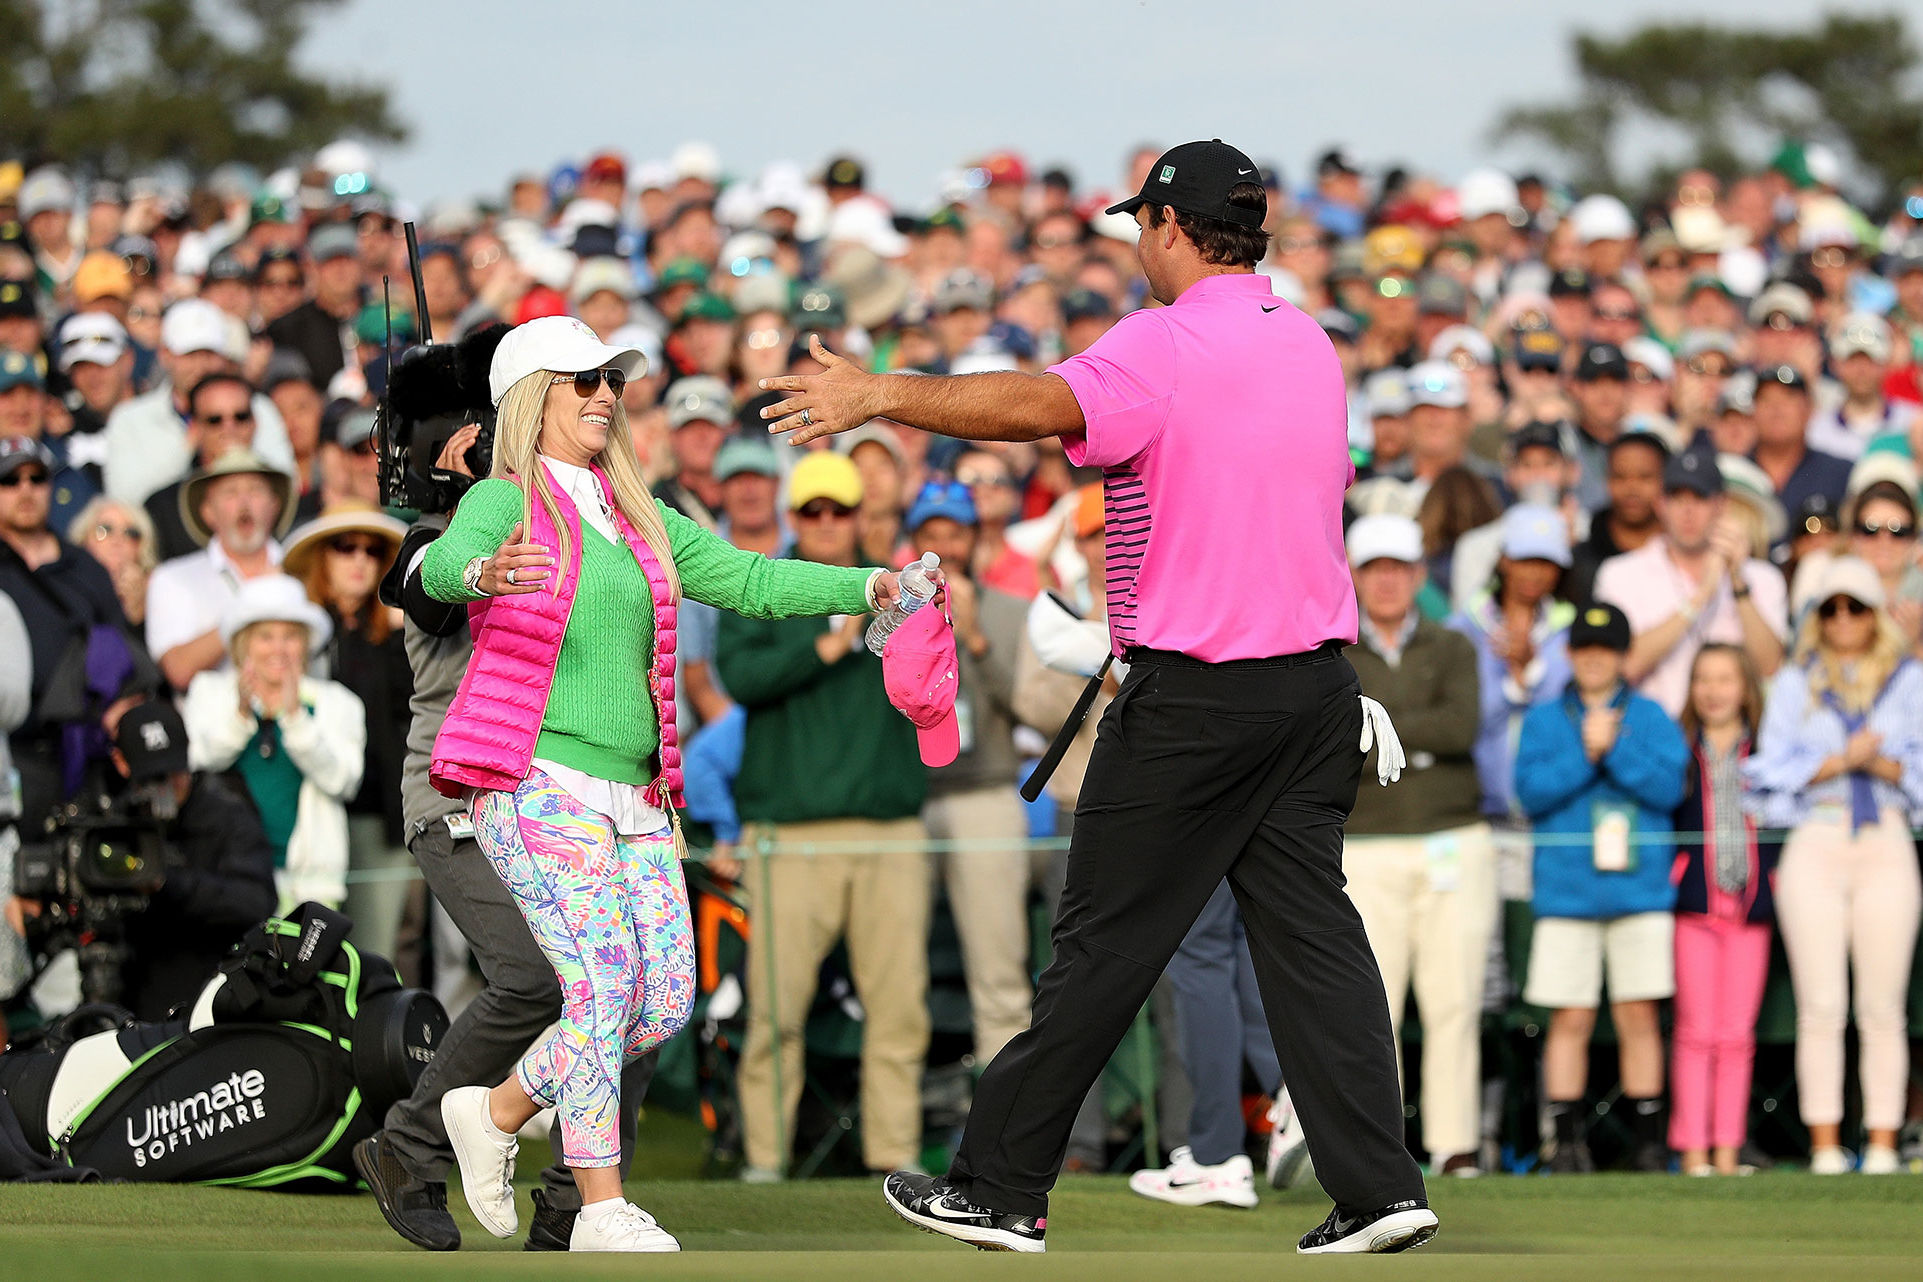 Patrick Reed May Have Won the Masters, But Wife Justine's Lilly Pulitzer Leggings Won the Day